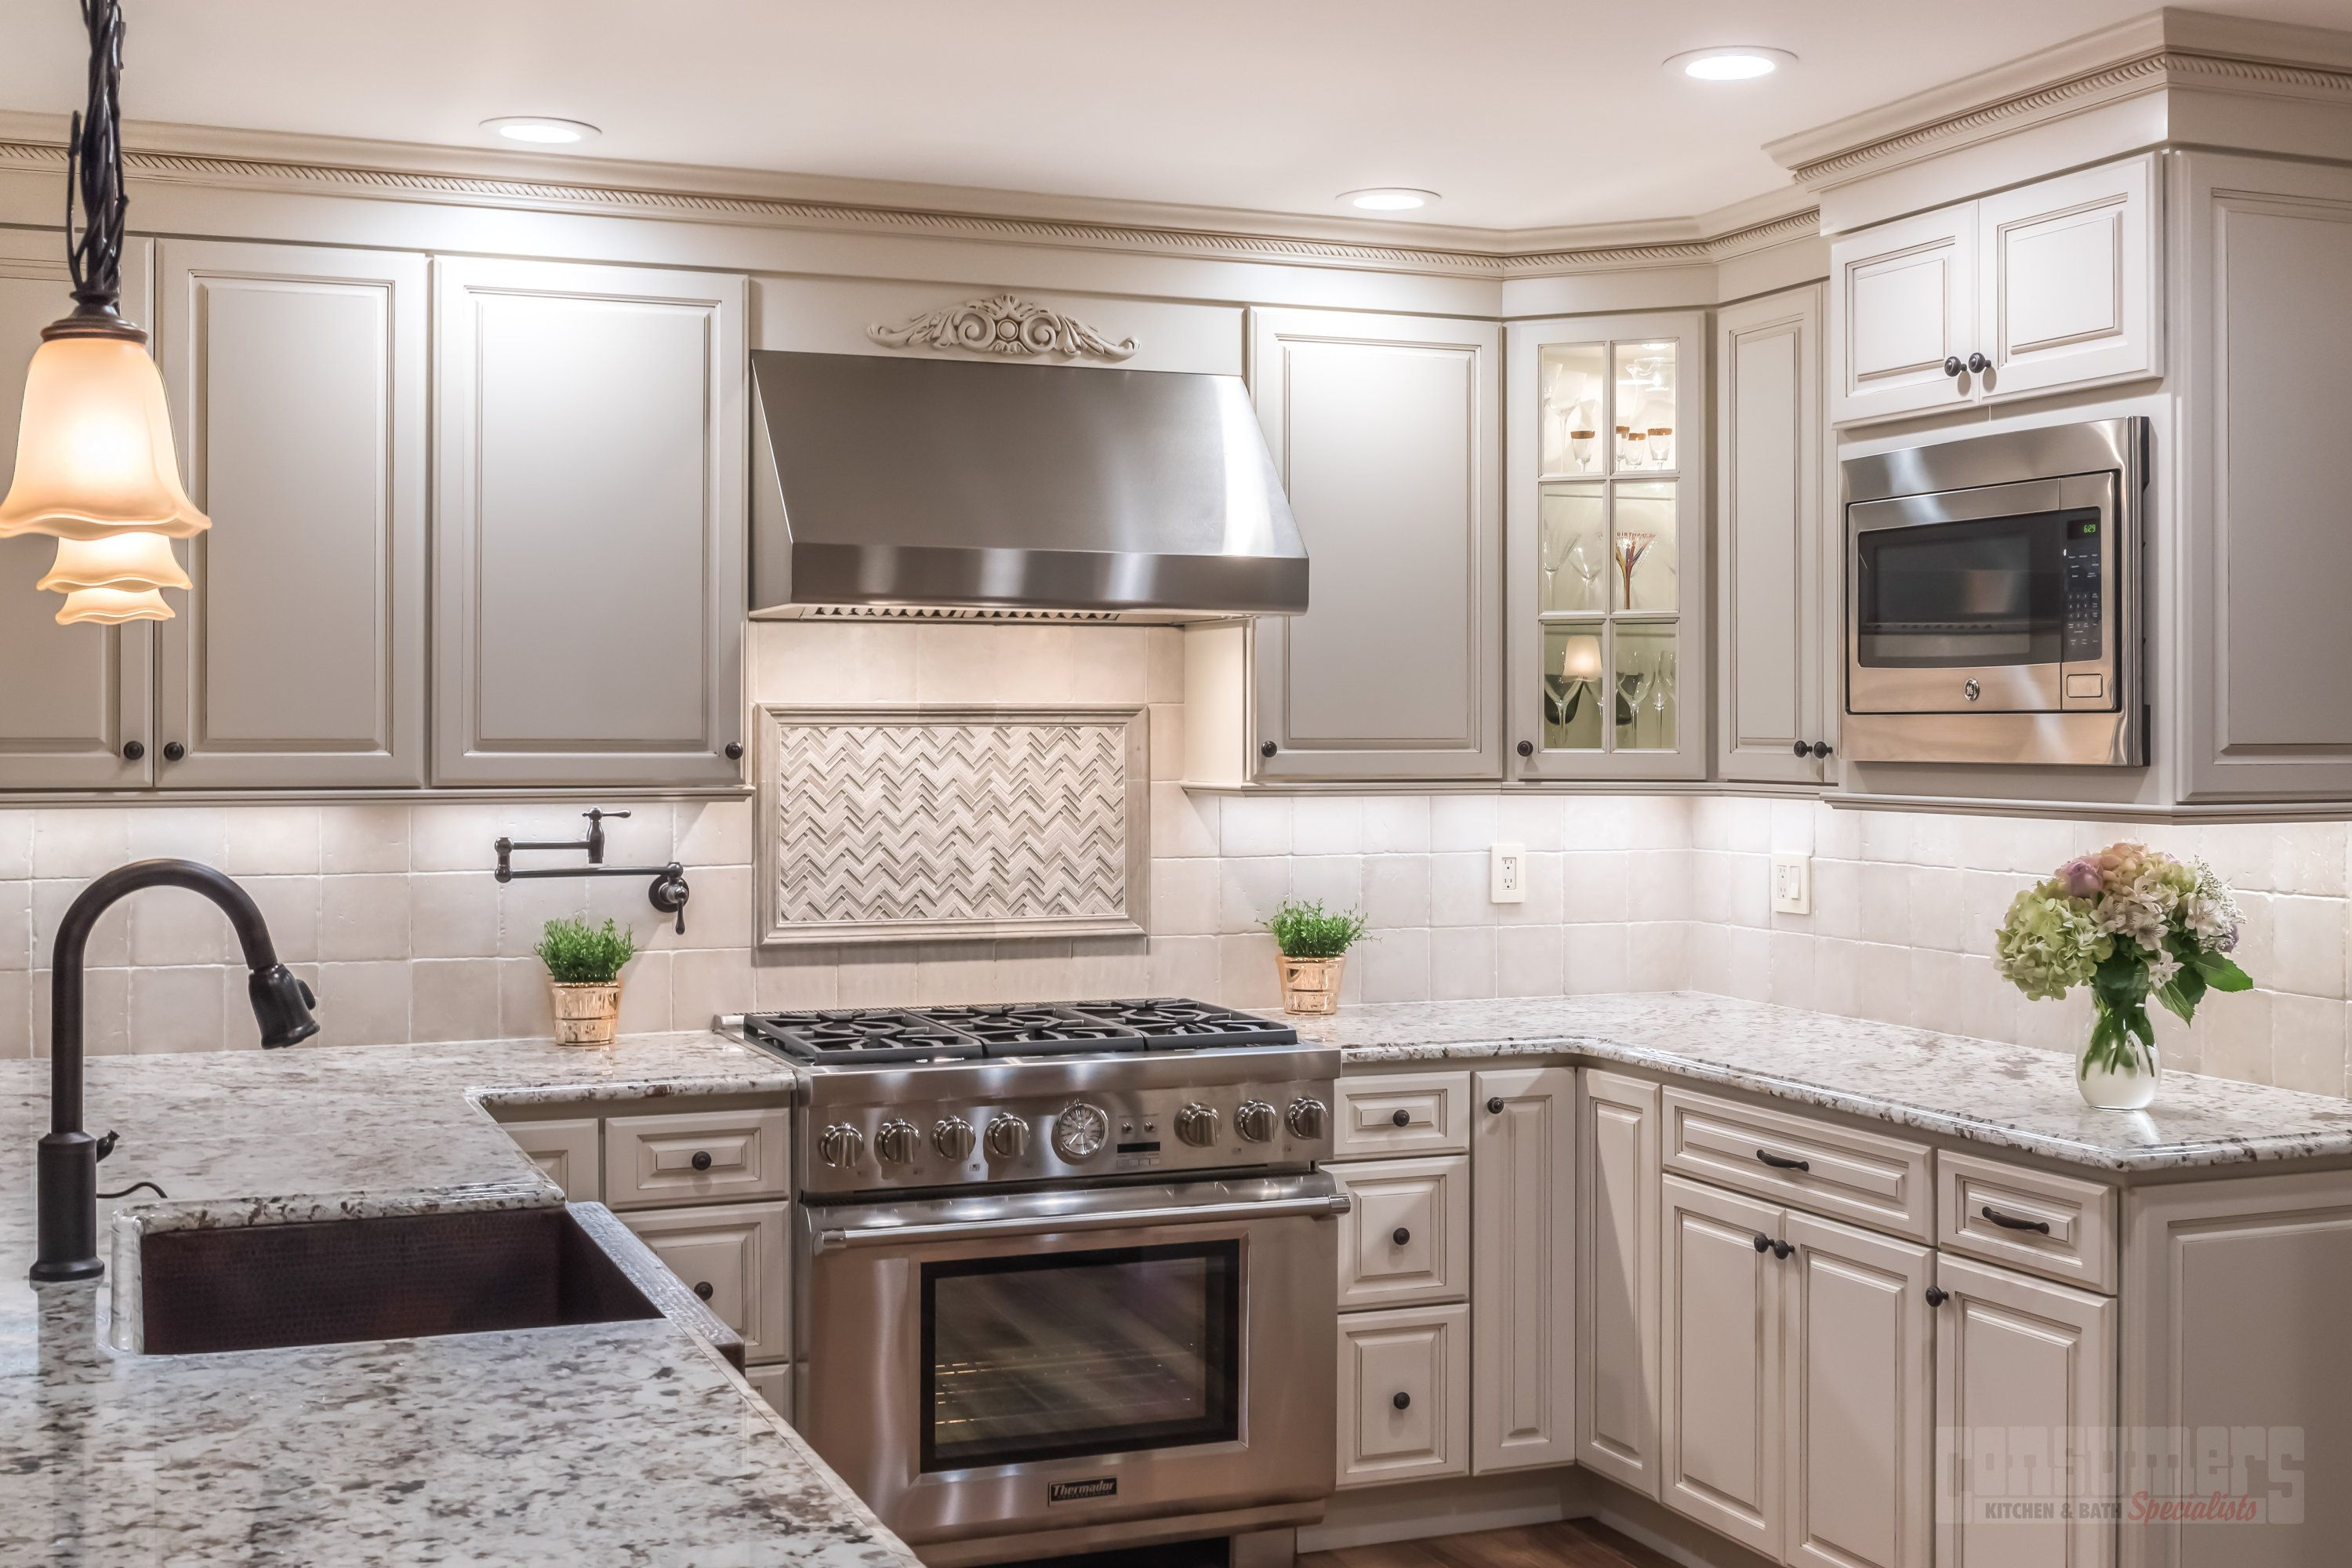 Pin by Consumers Kitchens & Baths on Classy Commack | Maple ...